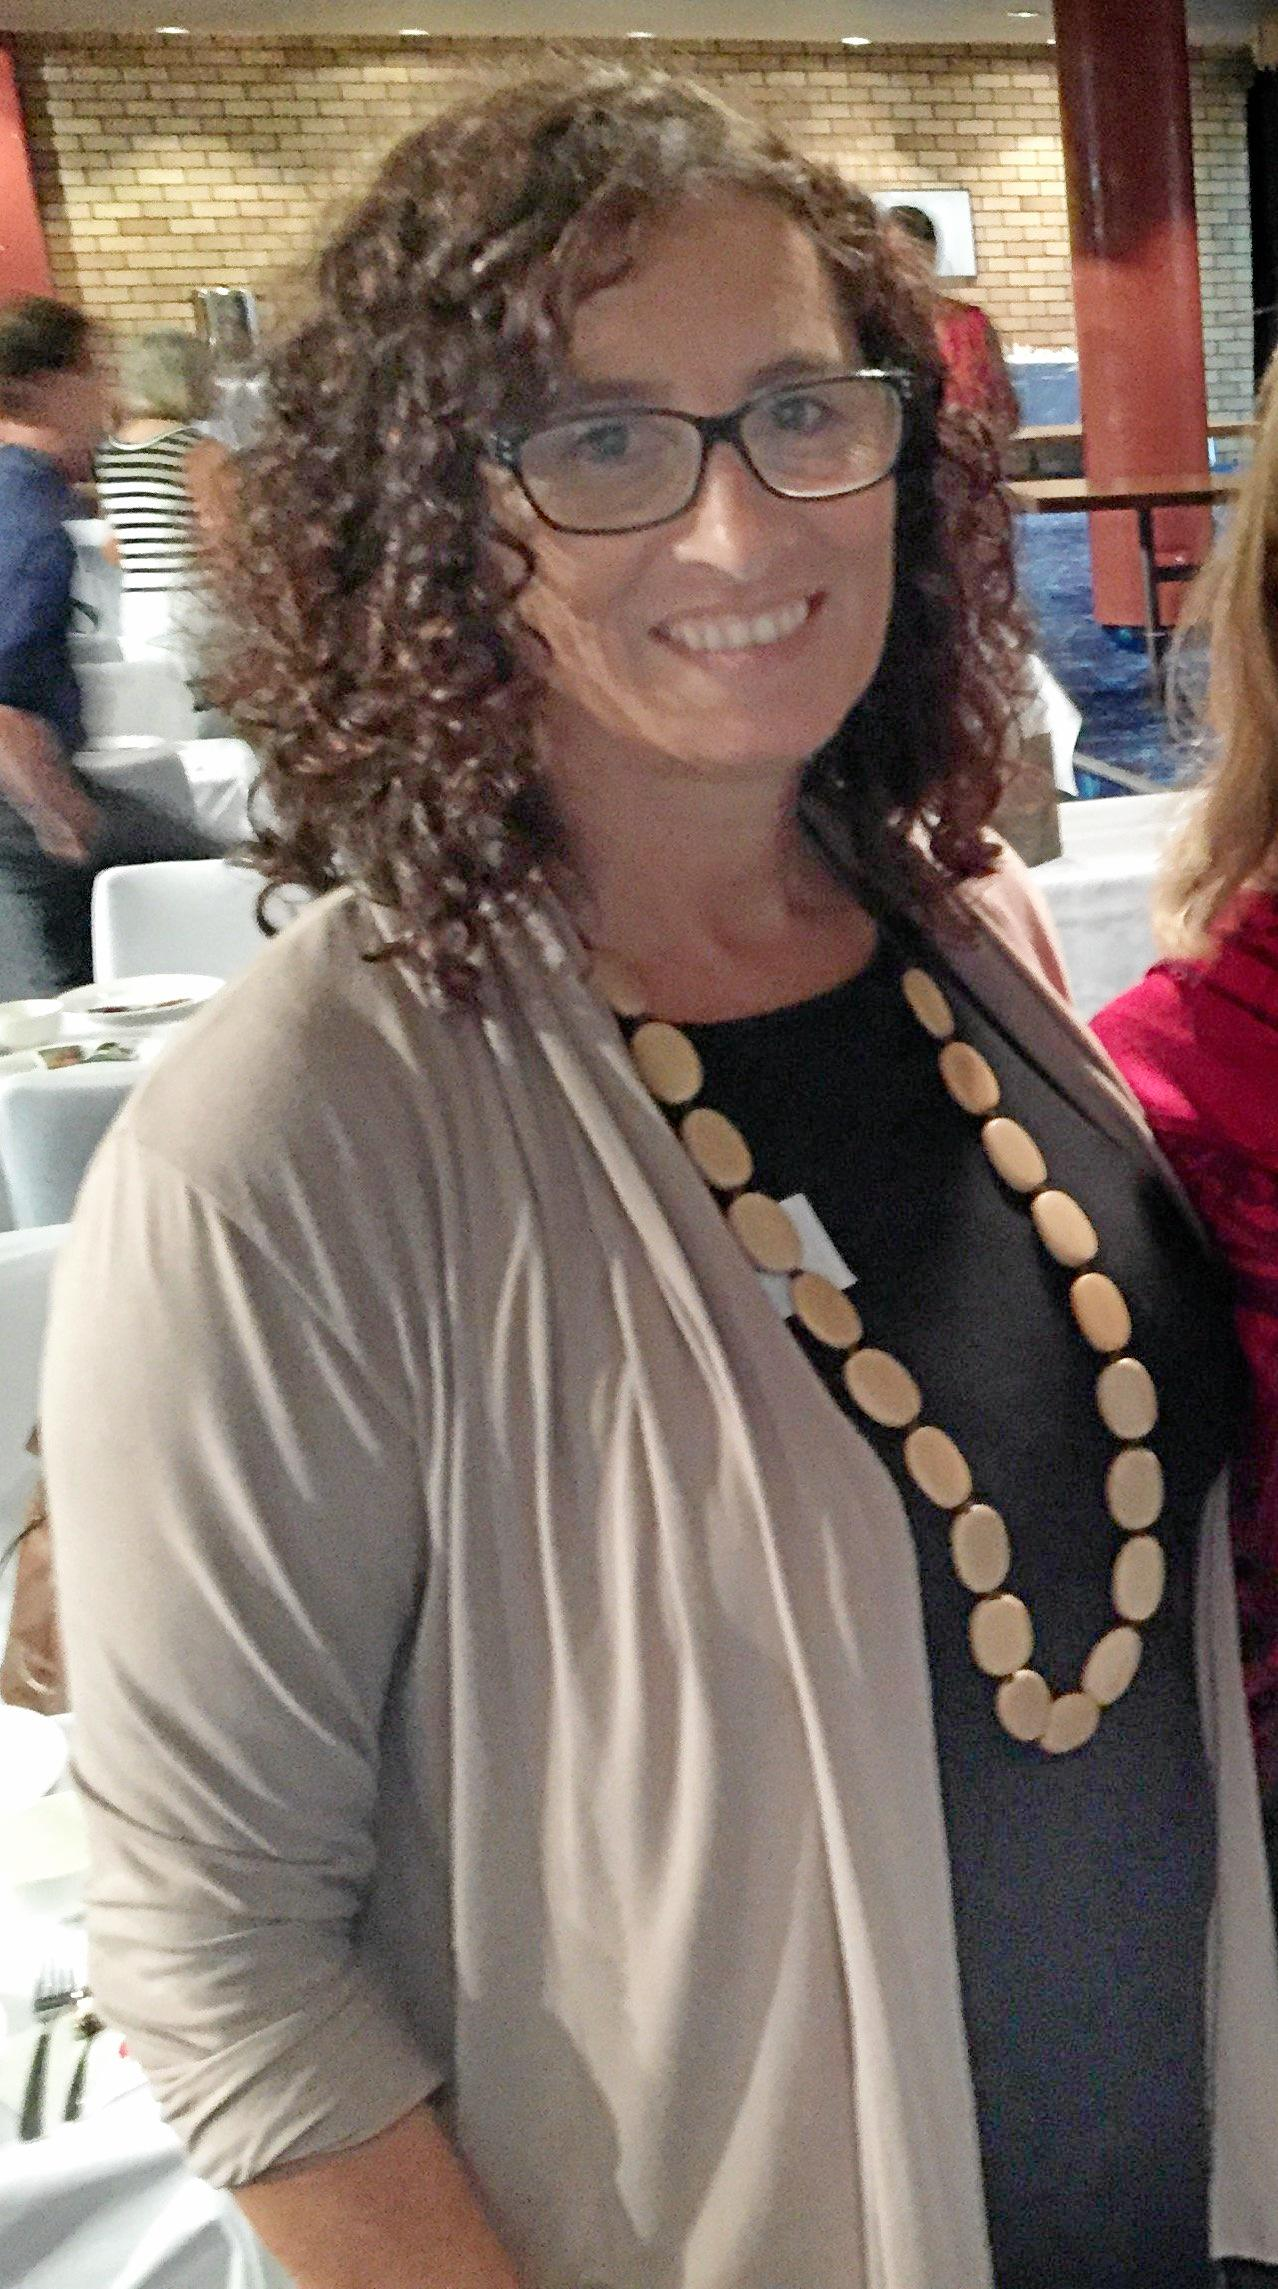 Universal Law solicitor Paula Fletcher, who represented Serge Benhayon in a failed defamation case against blogger Esther Rockett.